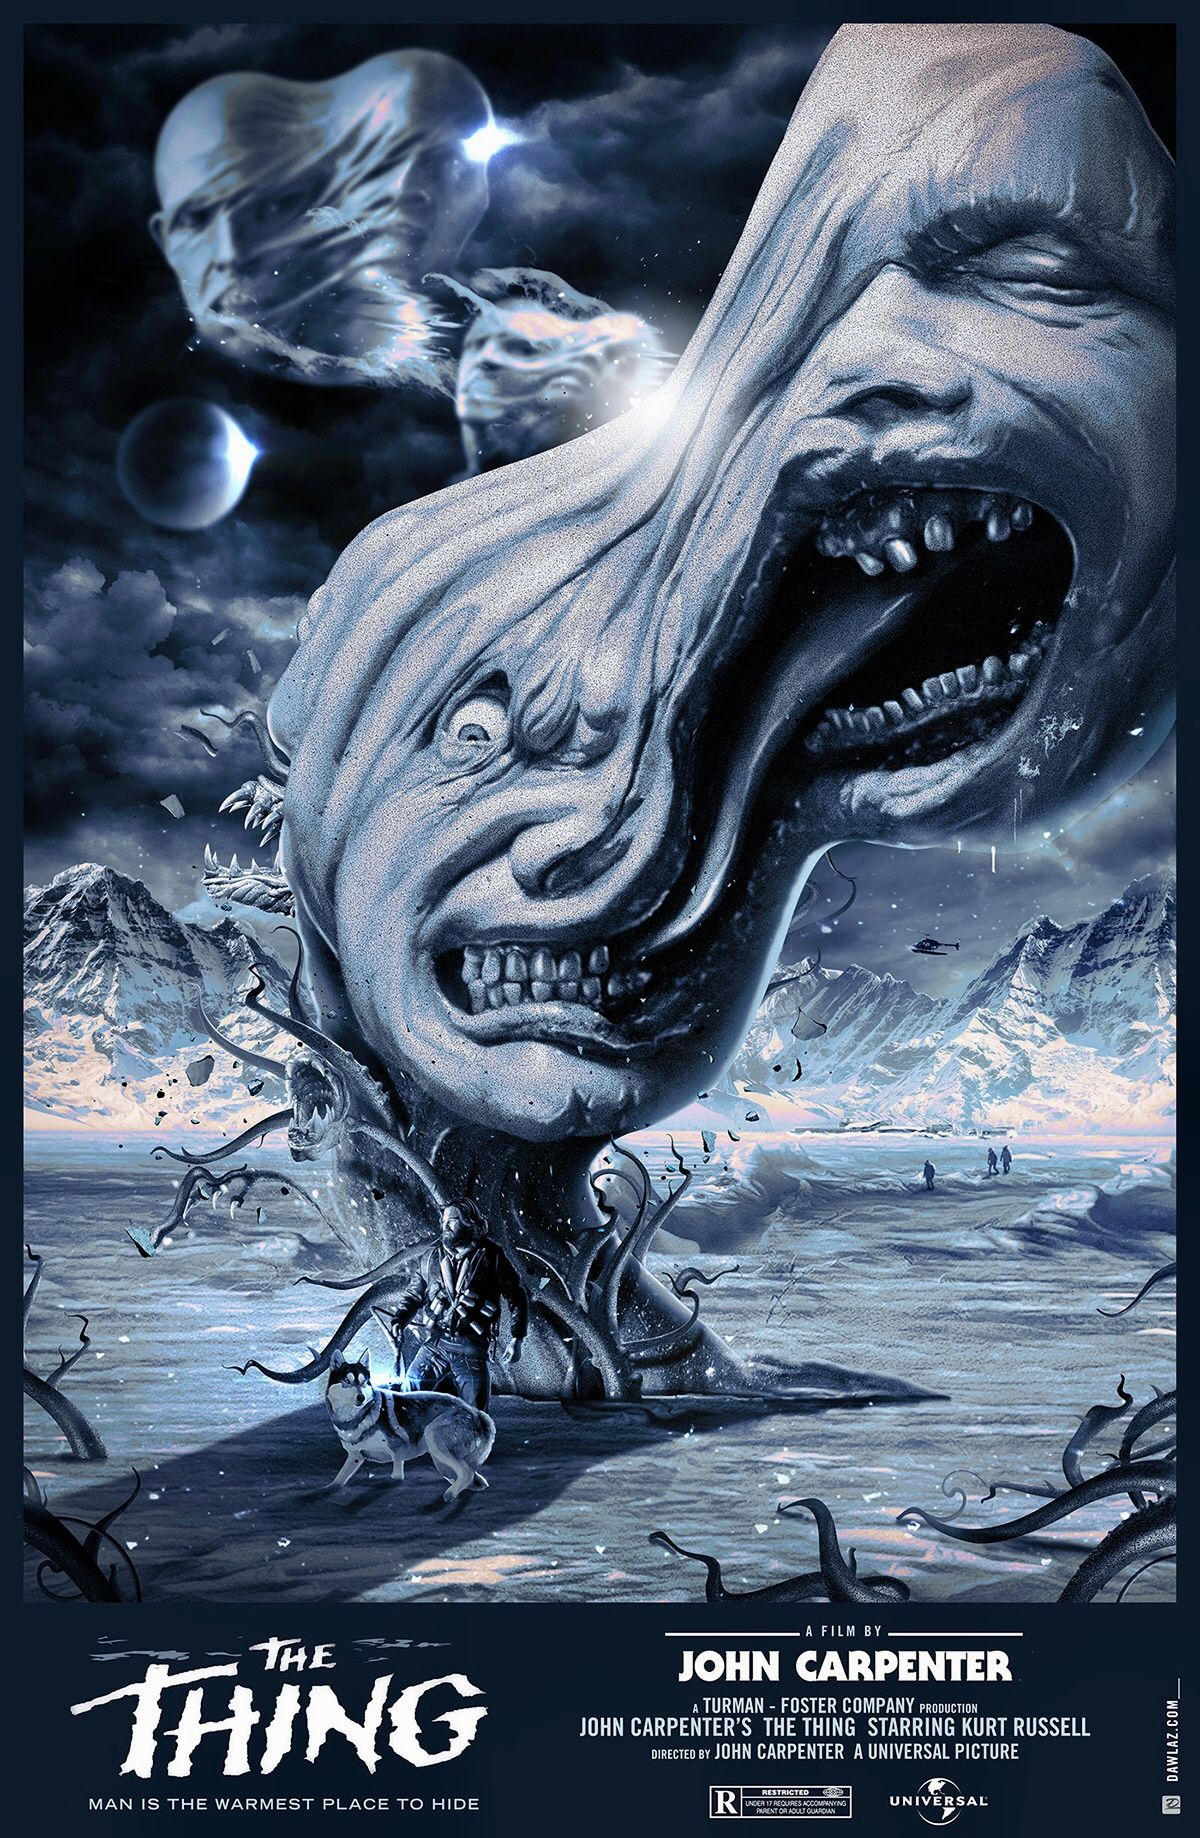 THE THING   Horror movie art, Horror movie icons, Horror posters